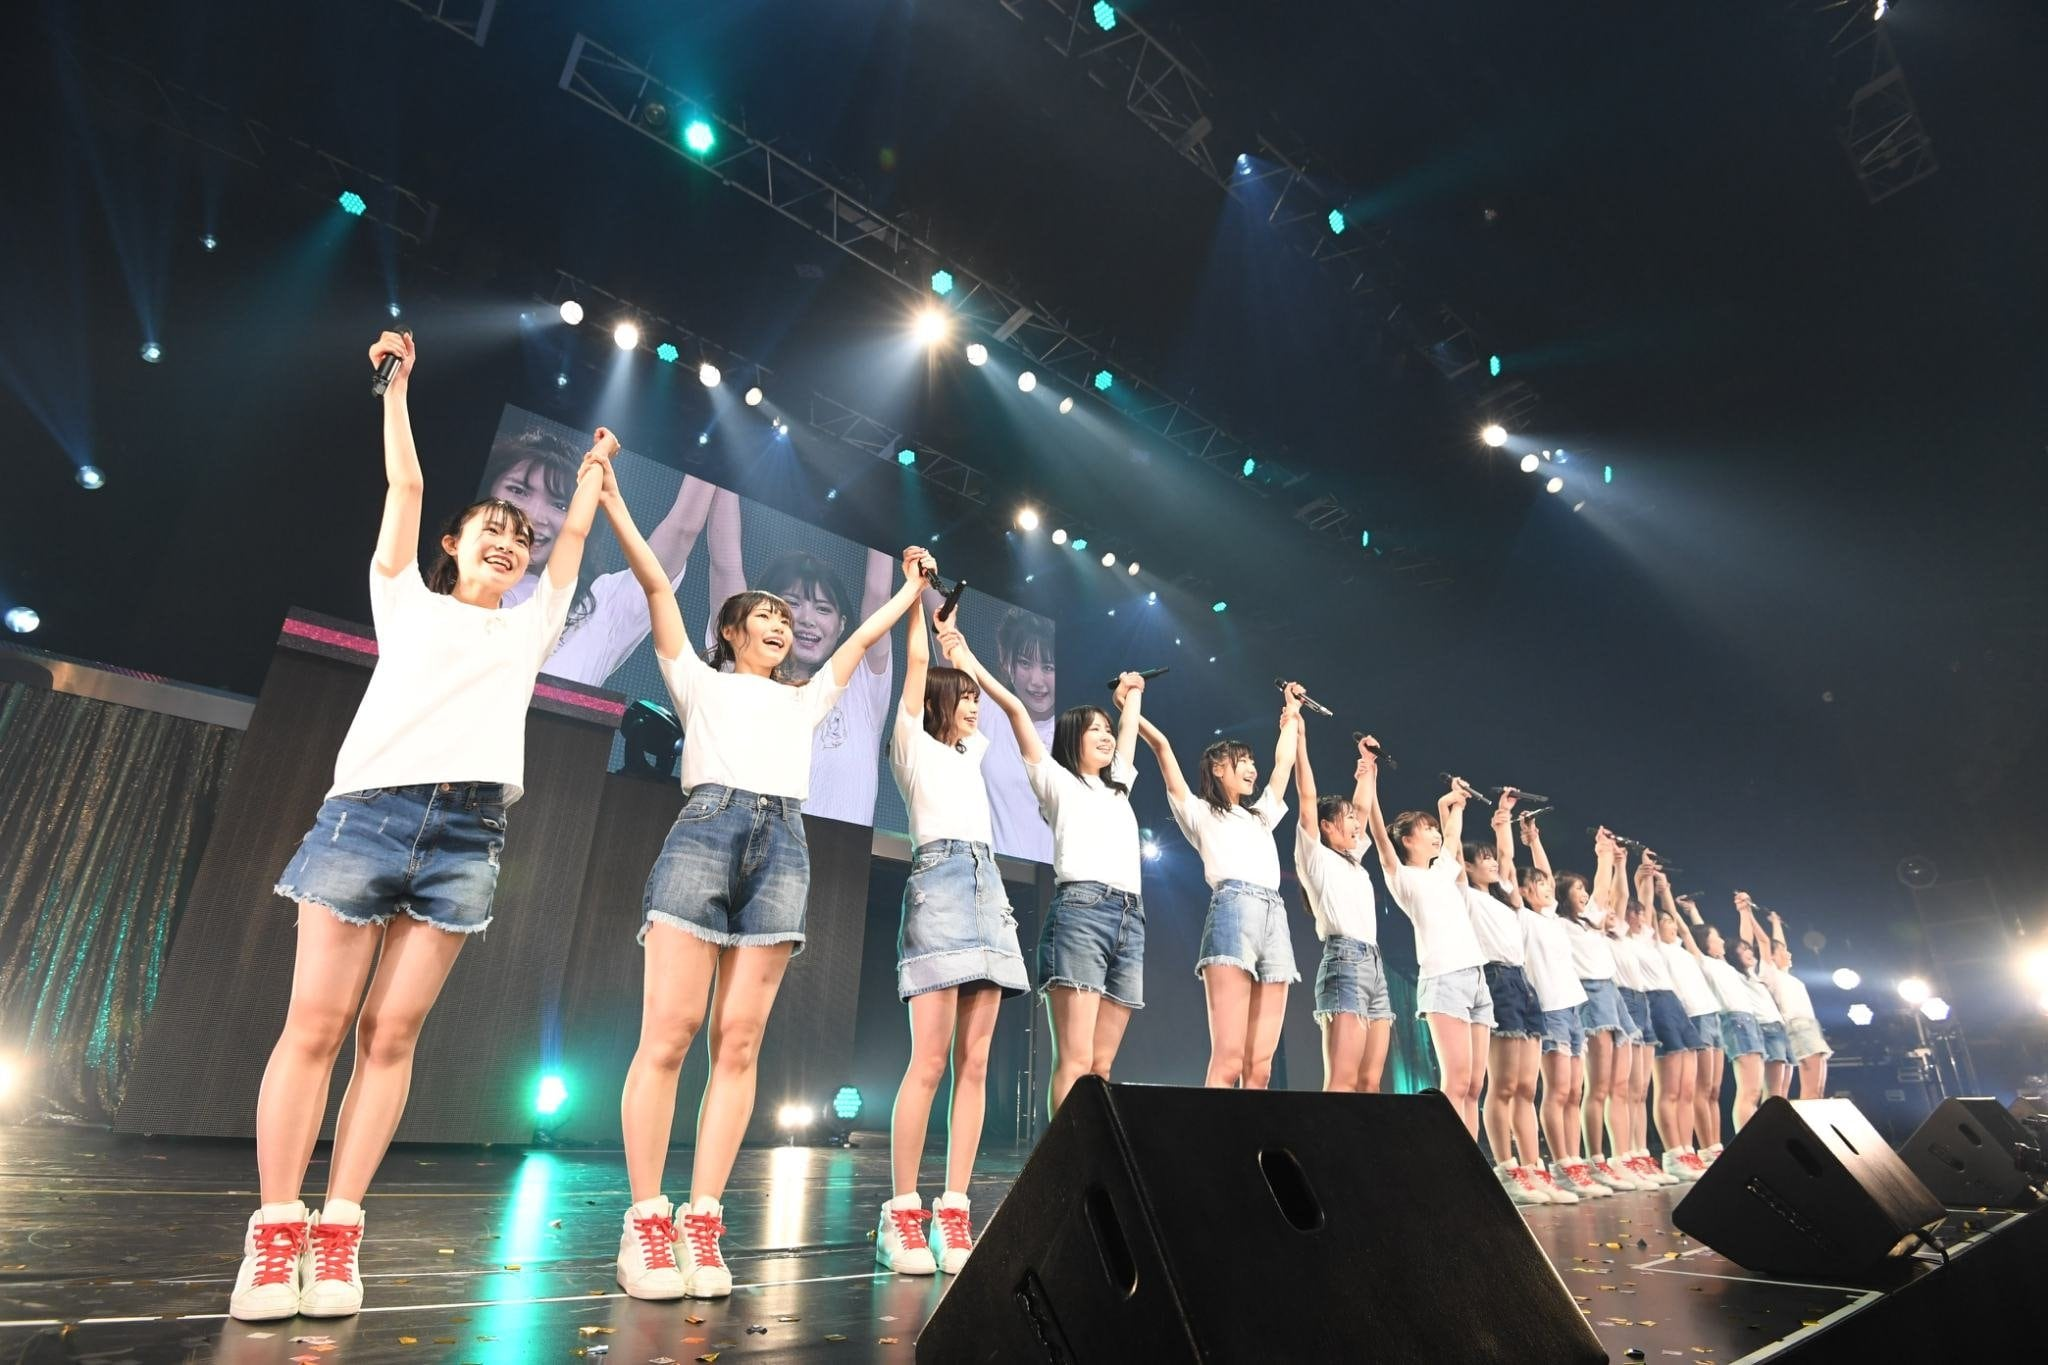 NGT48の画像6